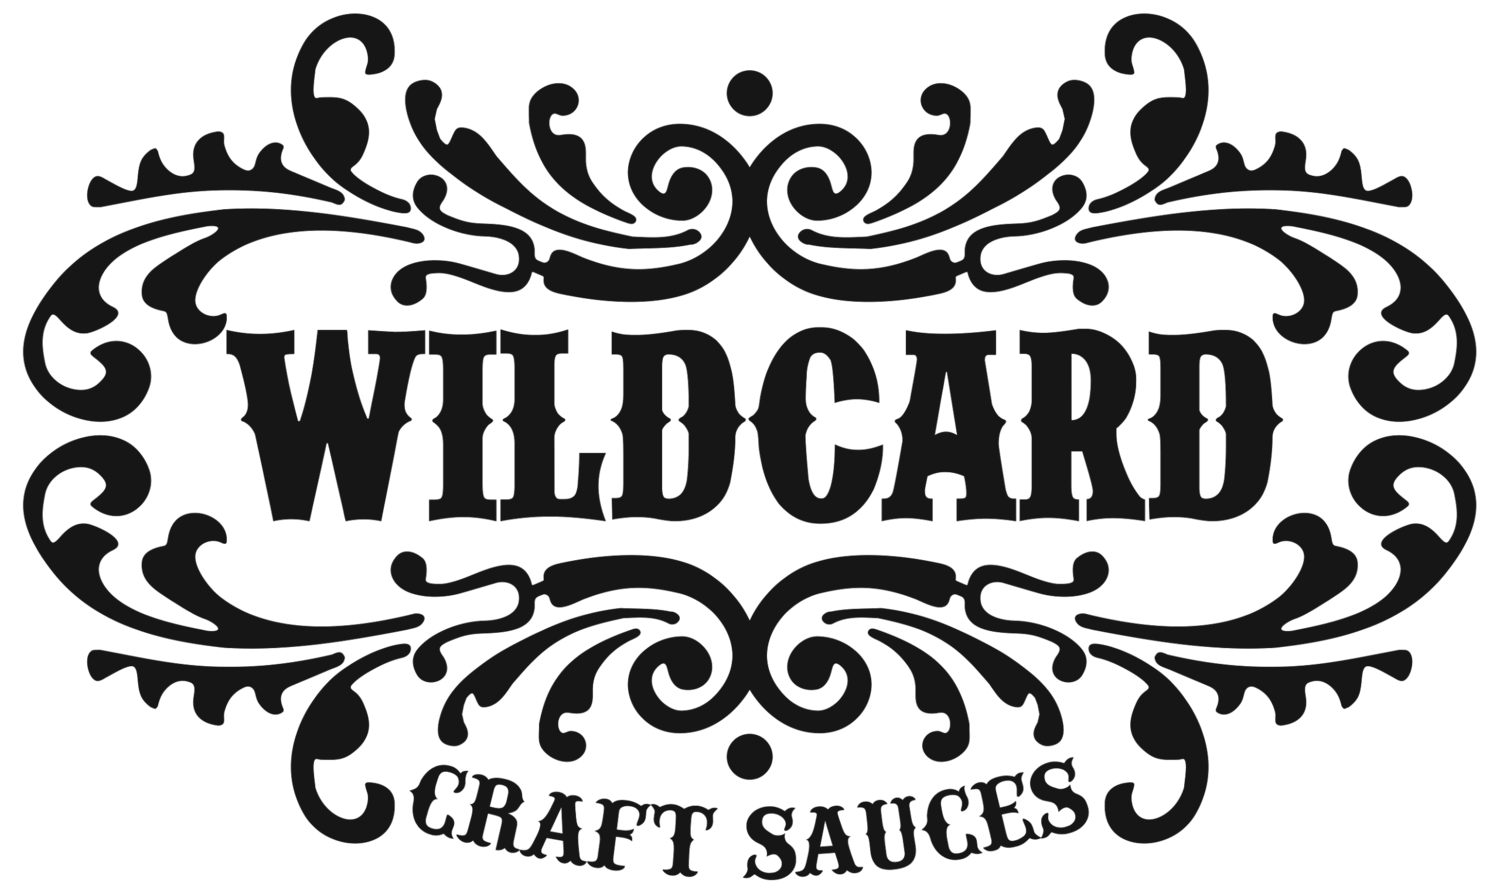 Wildcard Sauces, LLC